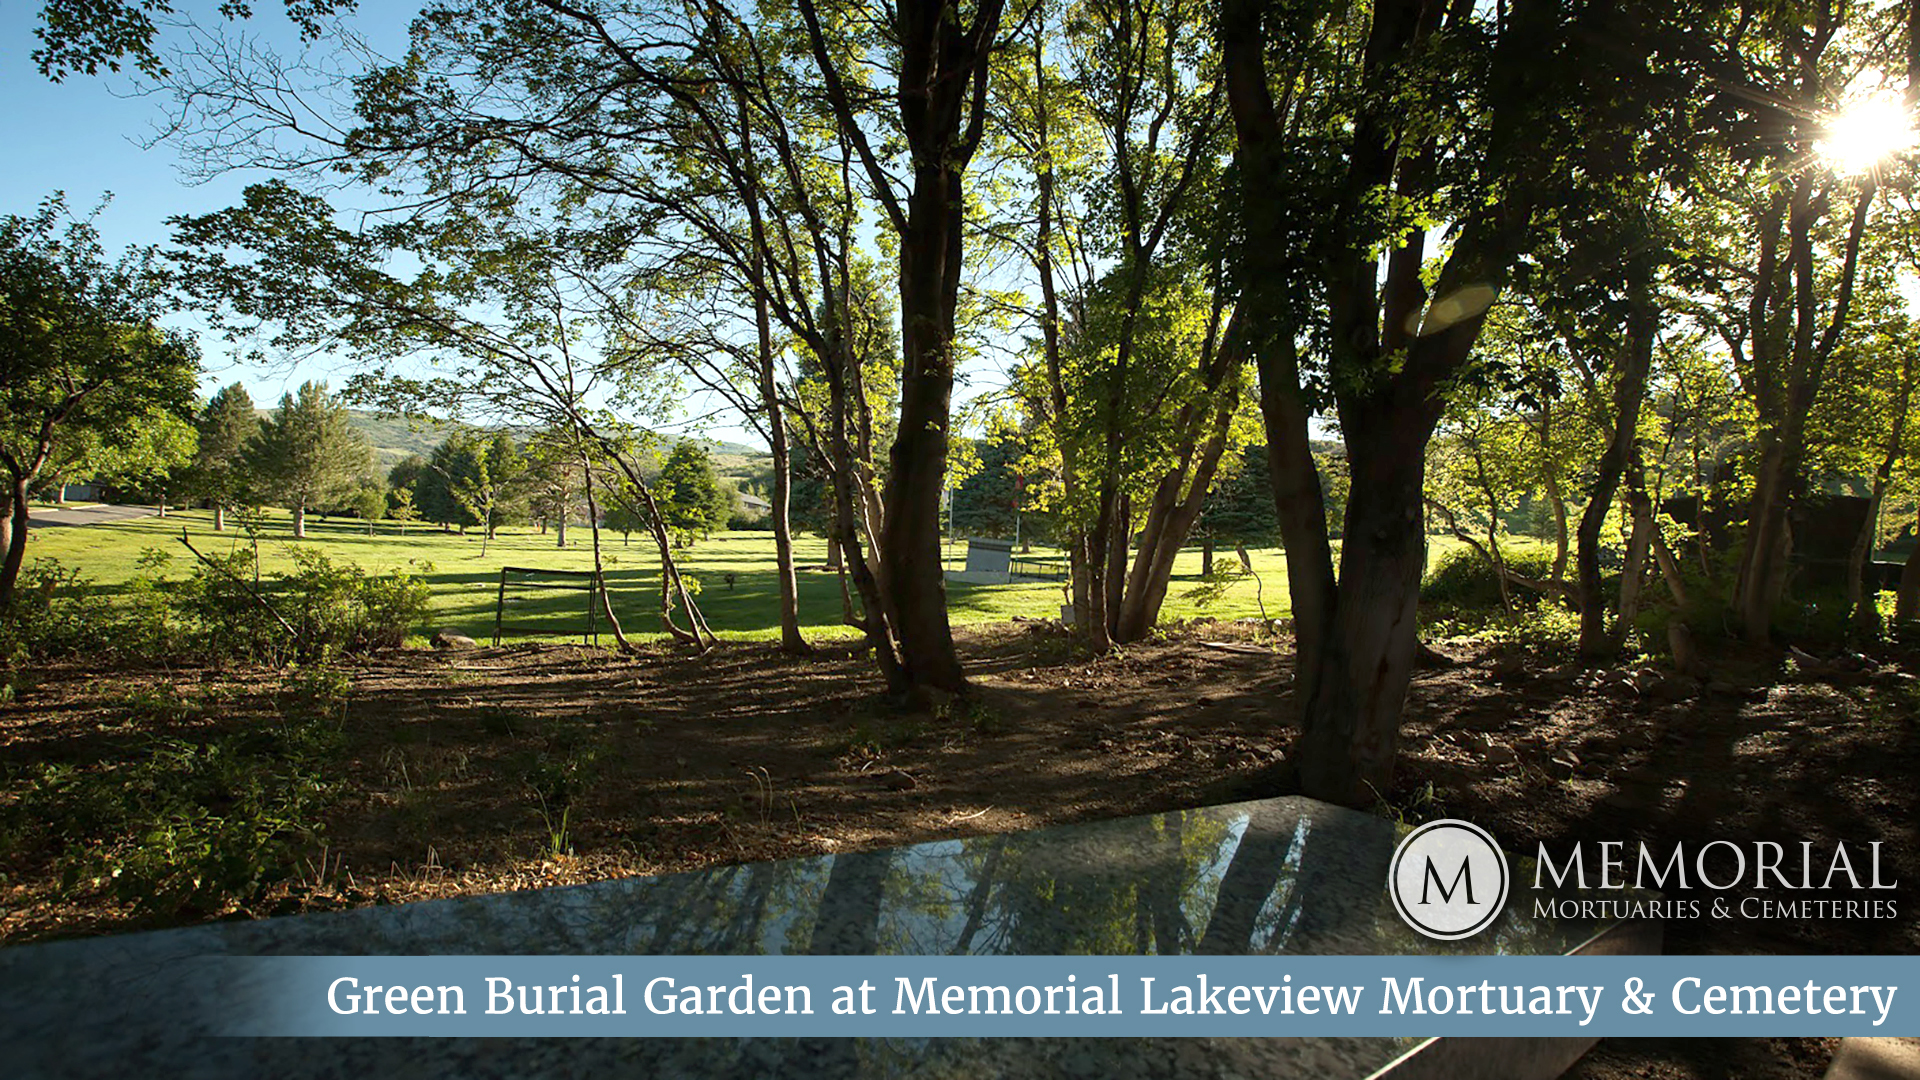 Memorial Mortuaries and Cemeteries - 4pm - 4/29/19